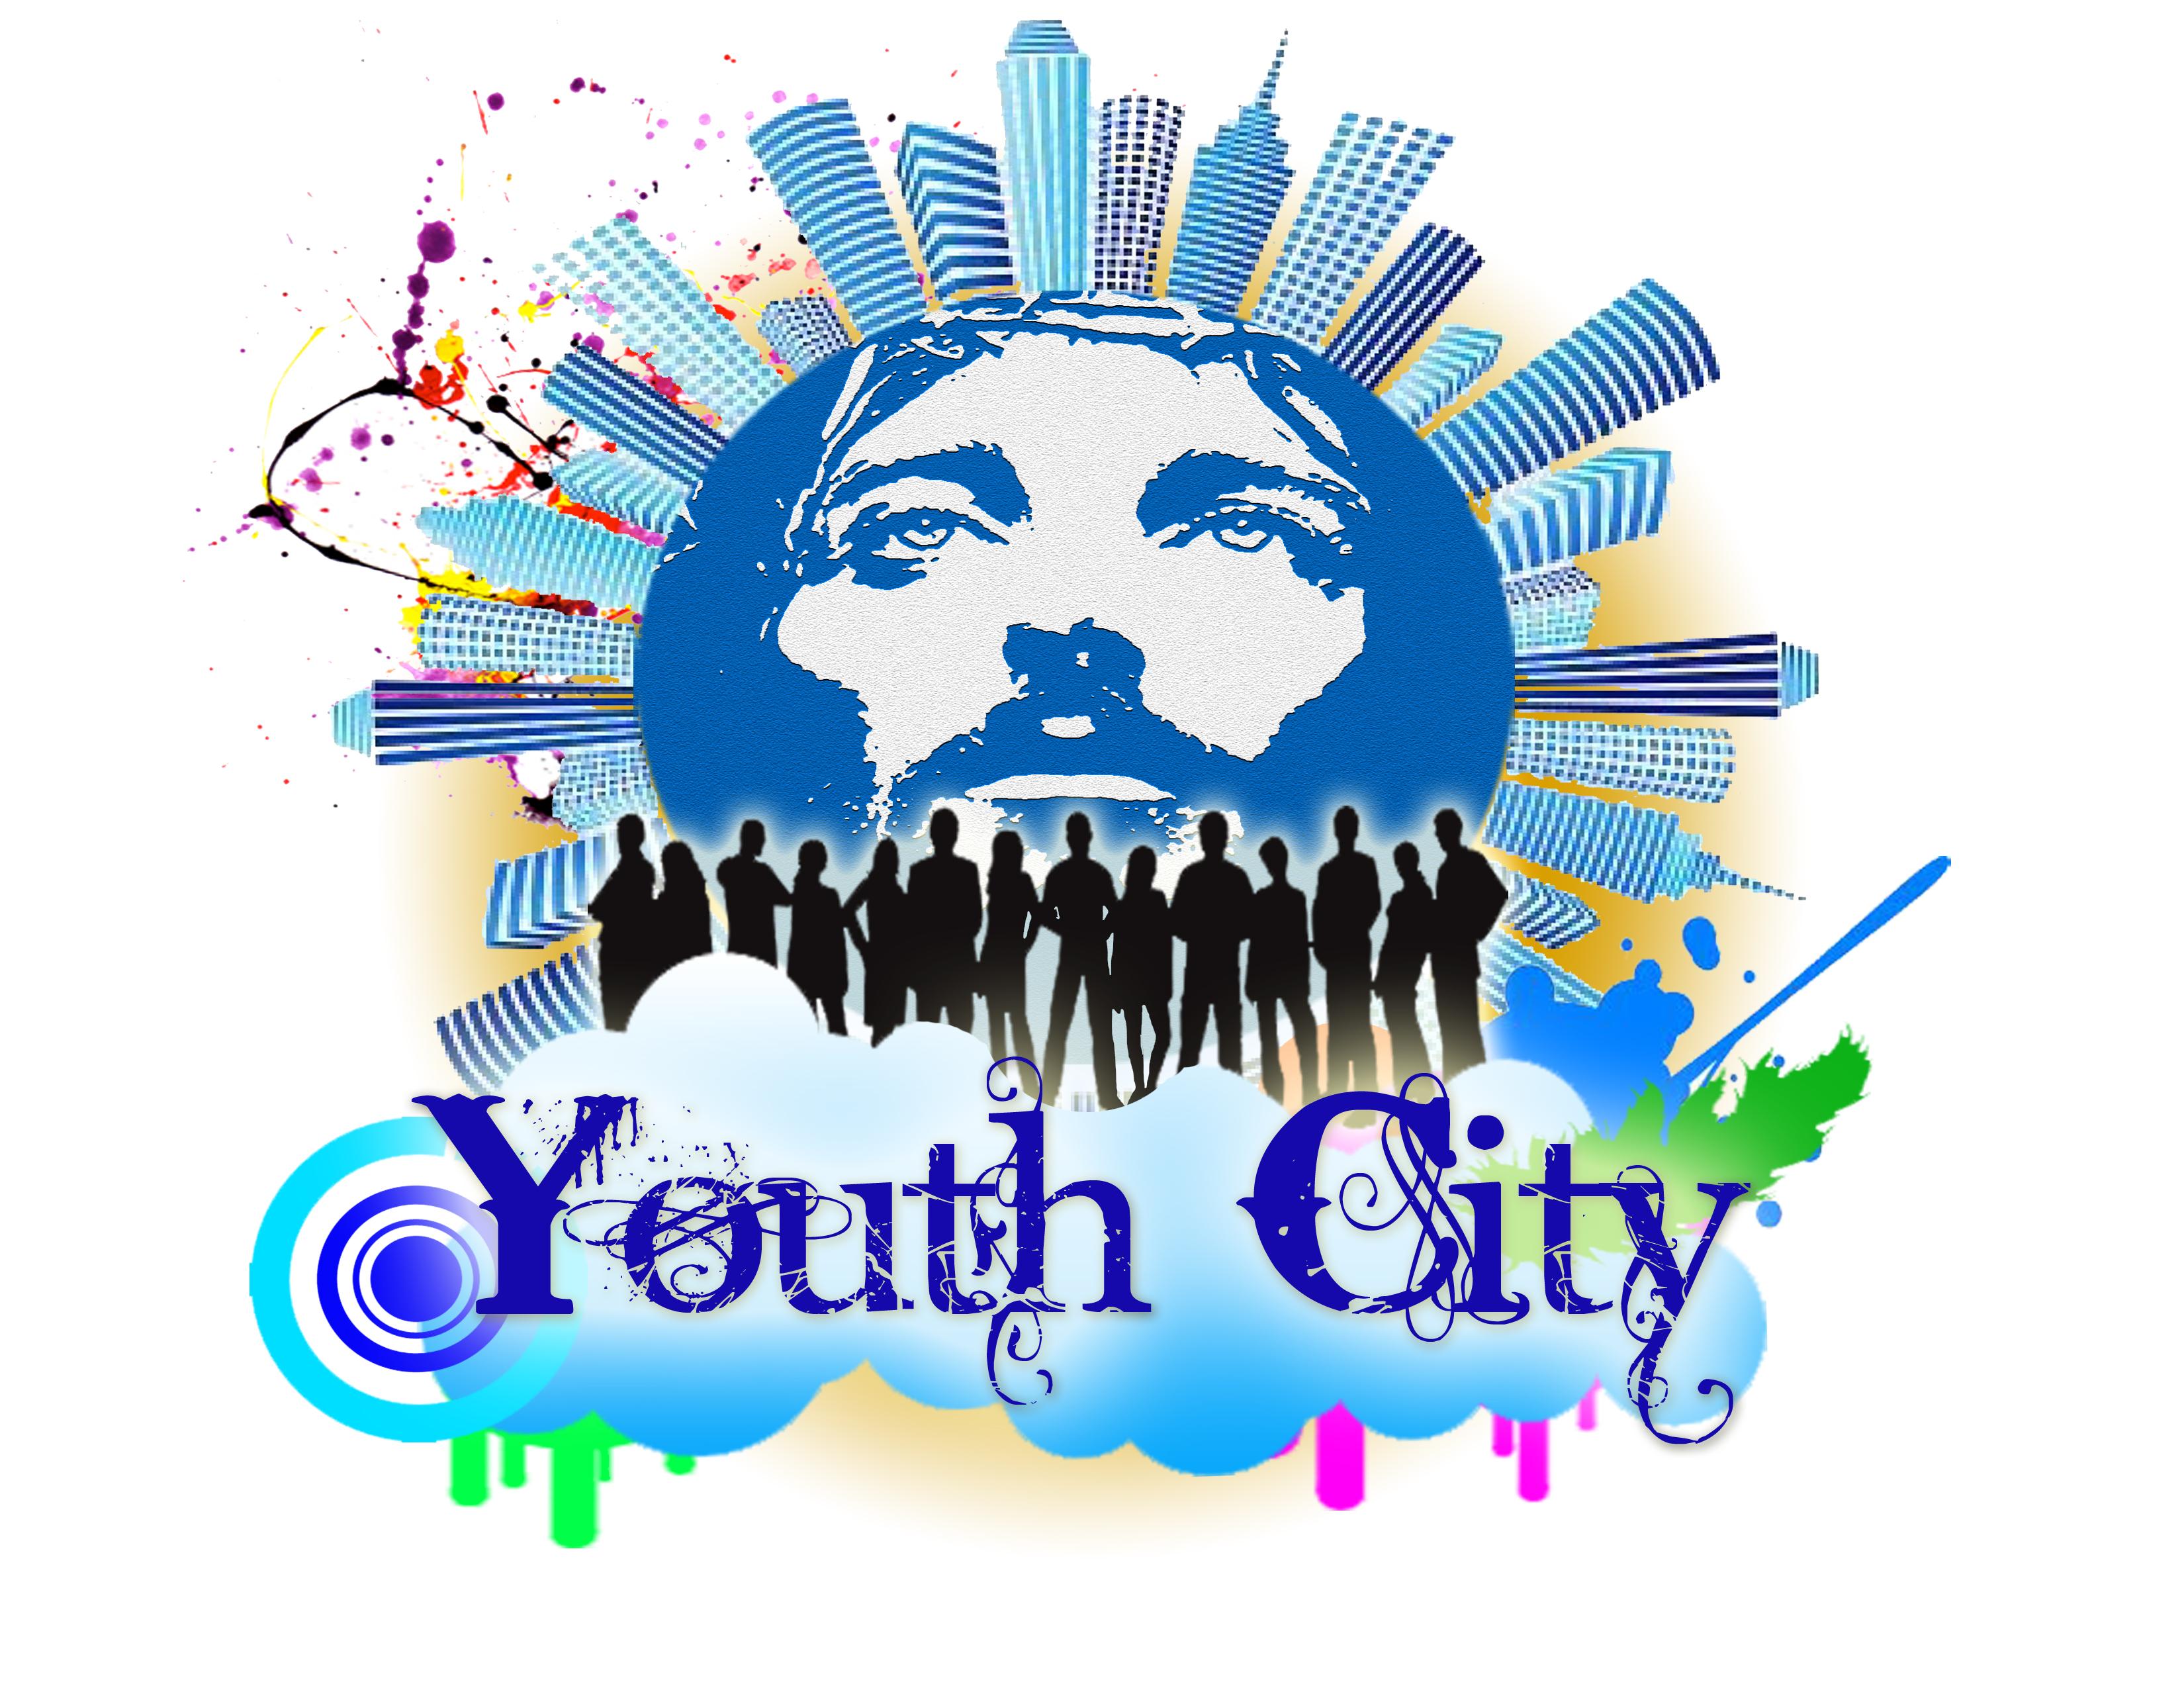 Youth city 2012 in roxas city bring youth closer to god cfc youth city 2012 in roxas city stopboris Images